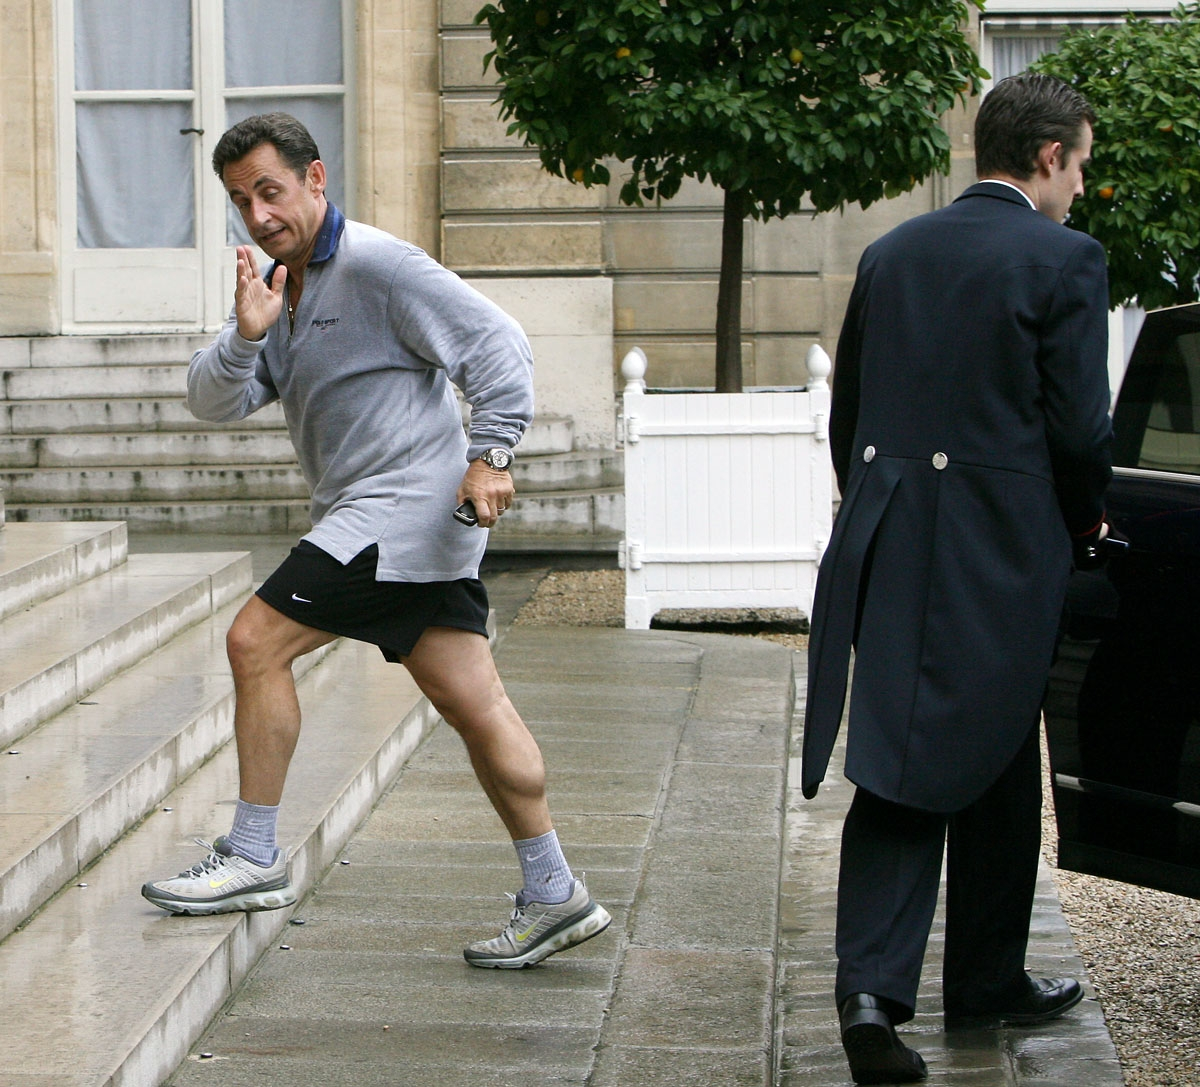 French president Niclas Sarkozy enters the Elysee palace after a jogging with Francois Fillon (not pictured), an hour after being appointed prime minister, 17 May 2007 in Paris.